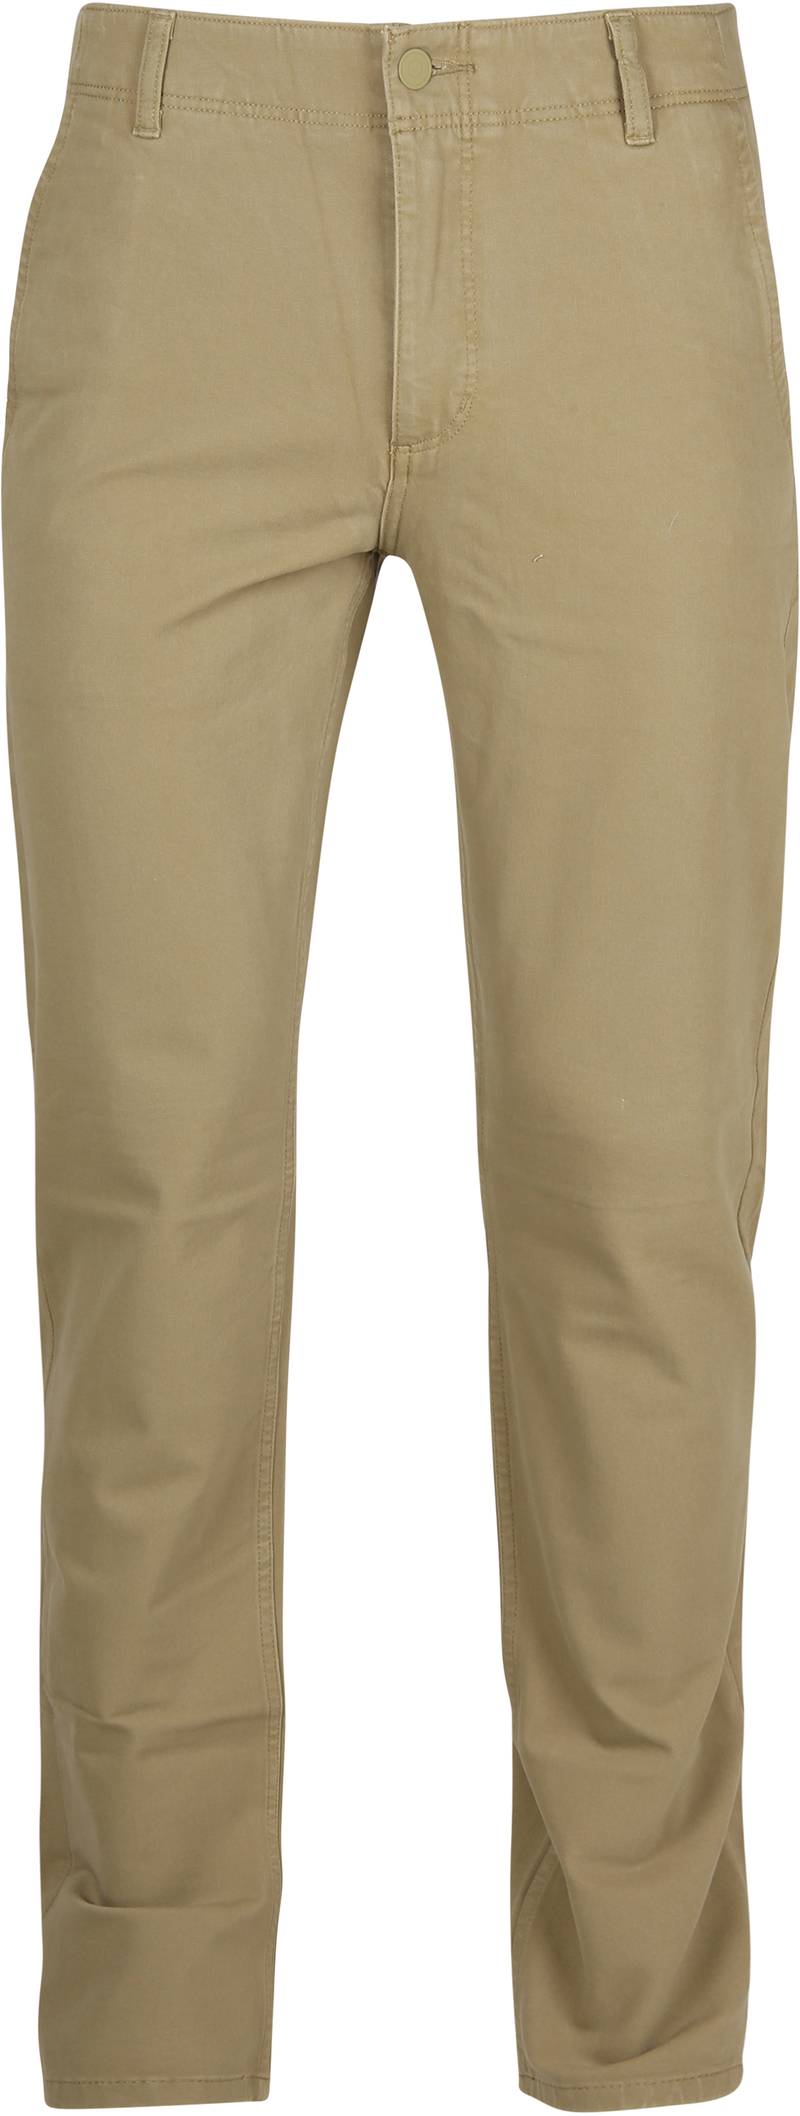 Dockers Alpha Khaki Skinny  photo 0